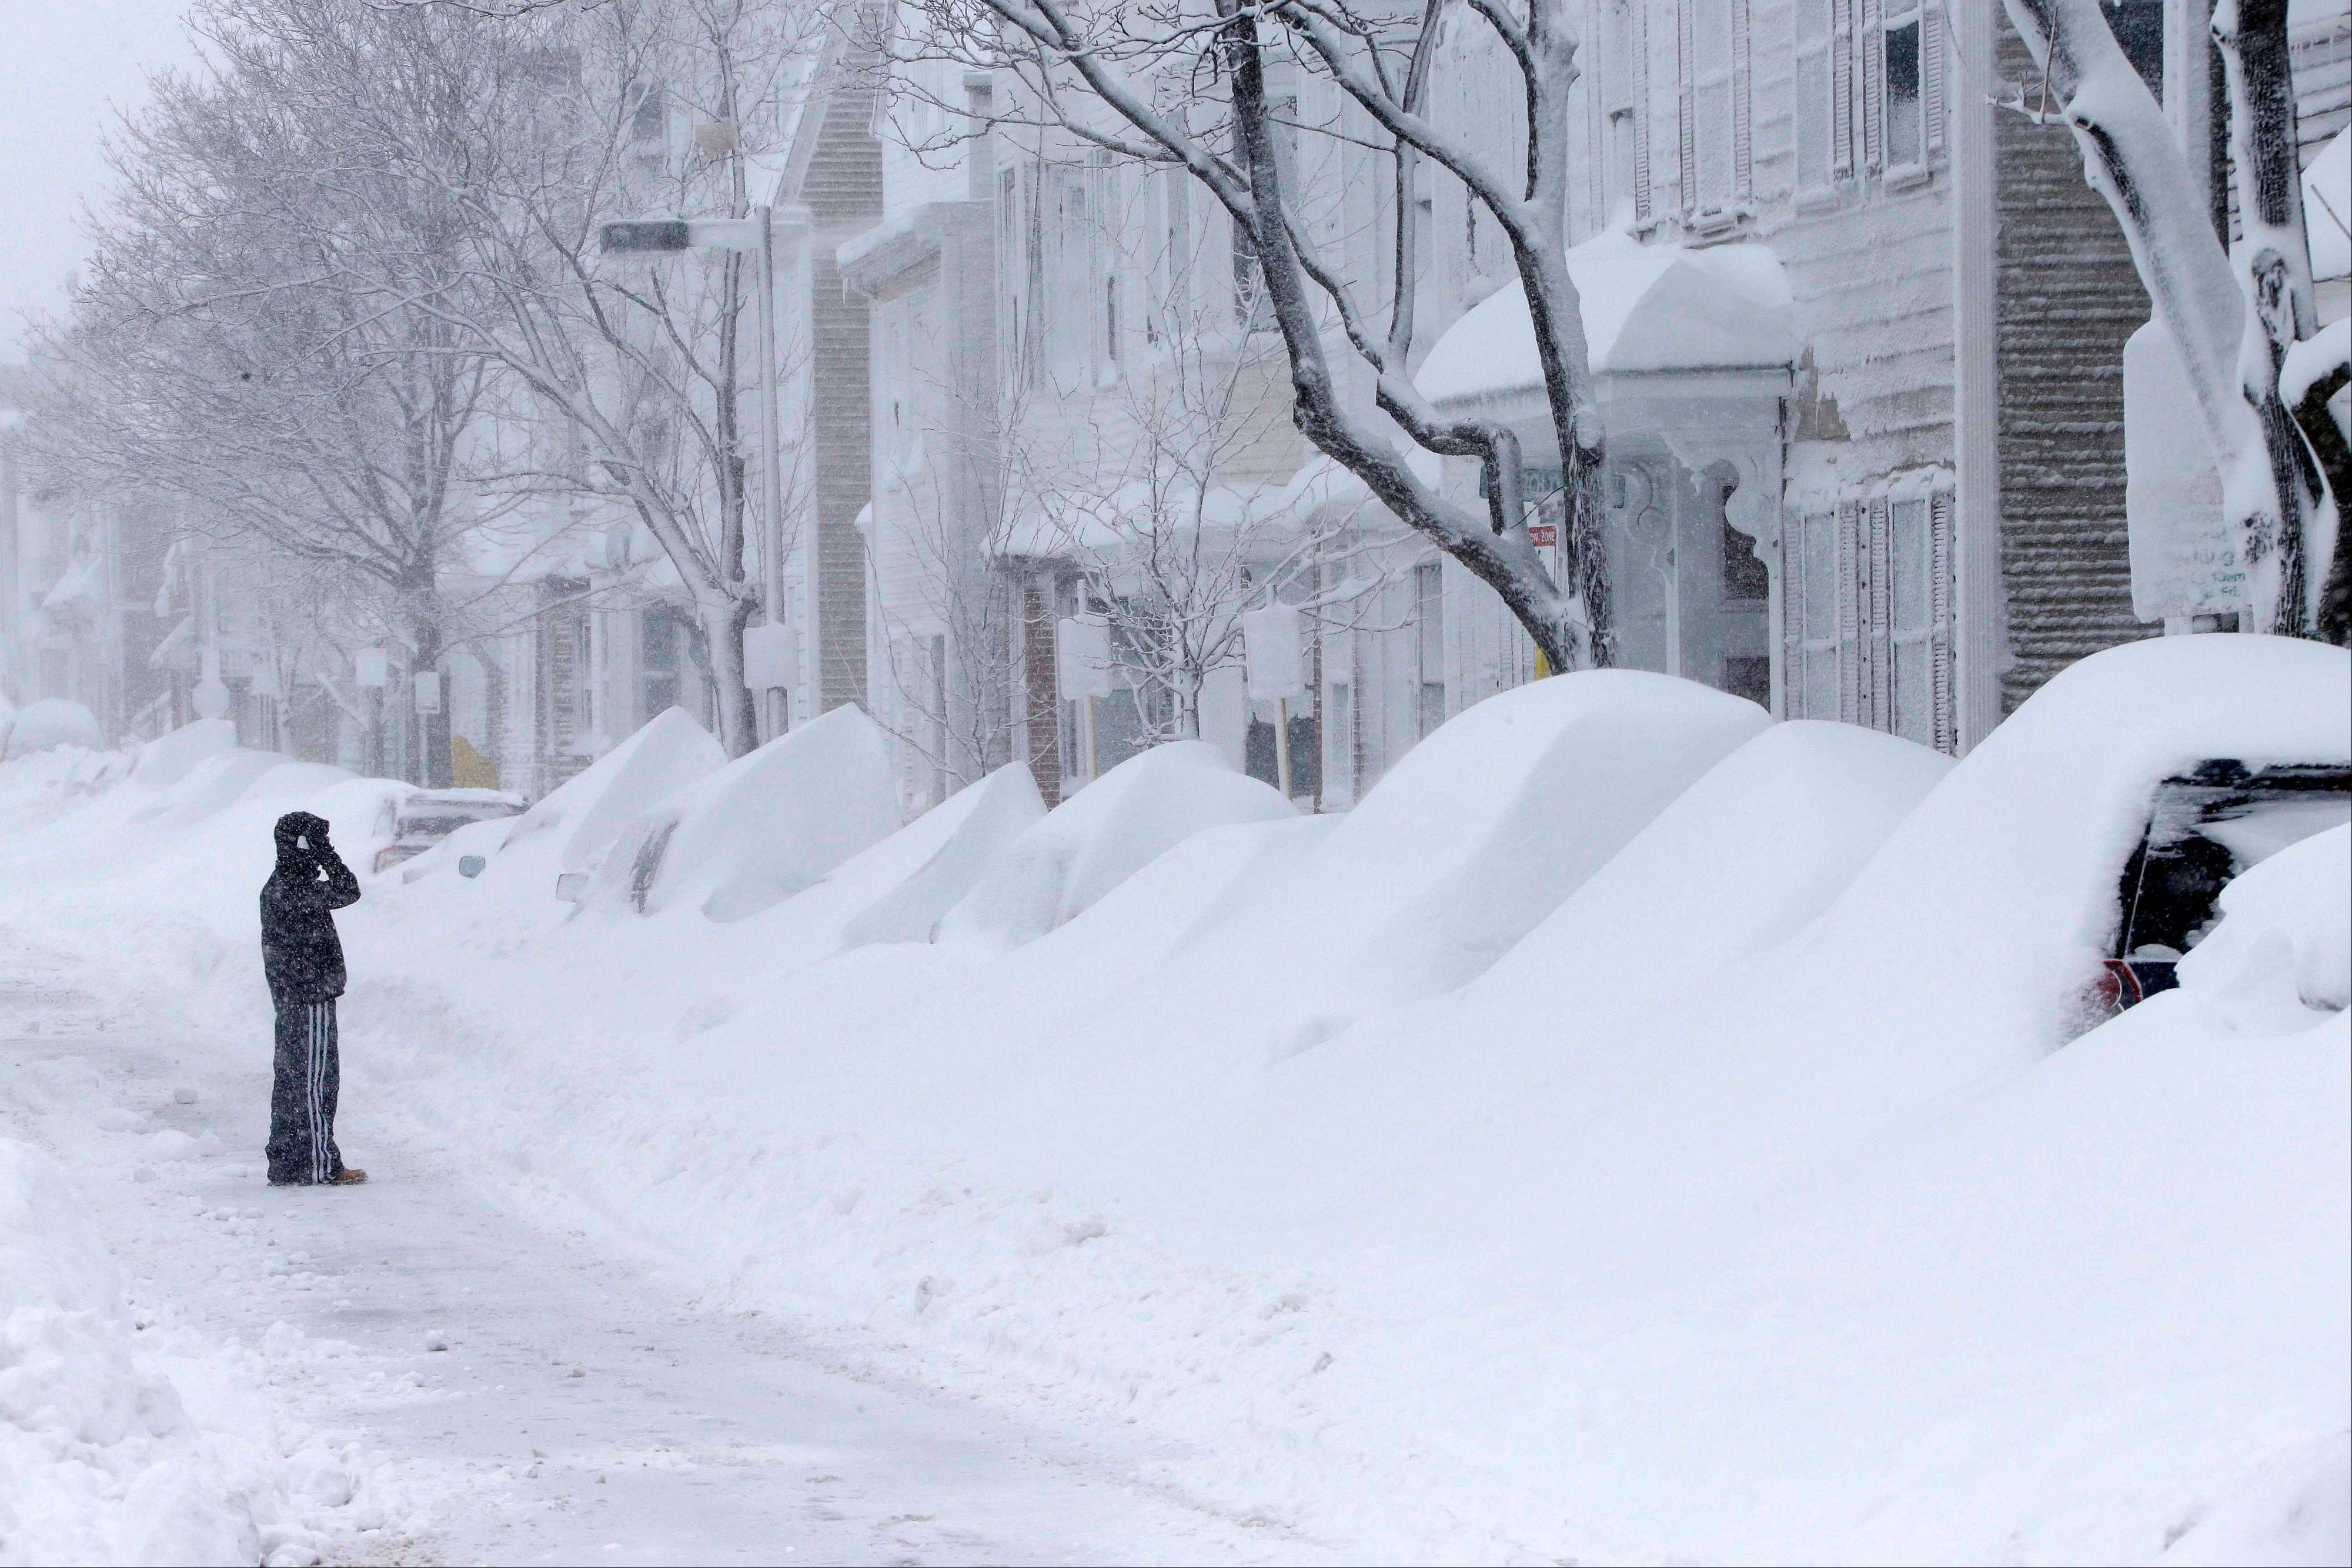 A man talks on the phone as he looks at a row of cars buried in snow on Third Street in the South Boston neighborhood of Boston Saturday, Feb. 9, 2013.